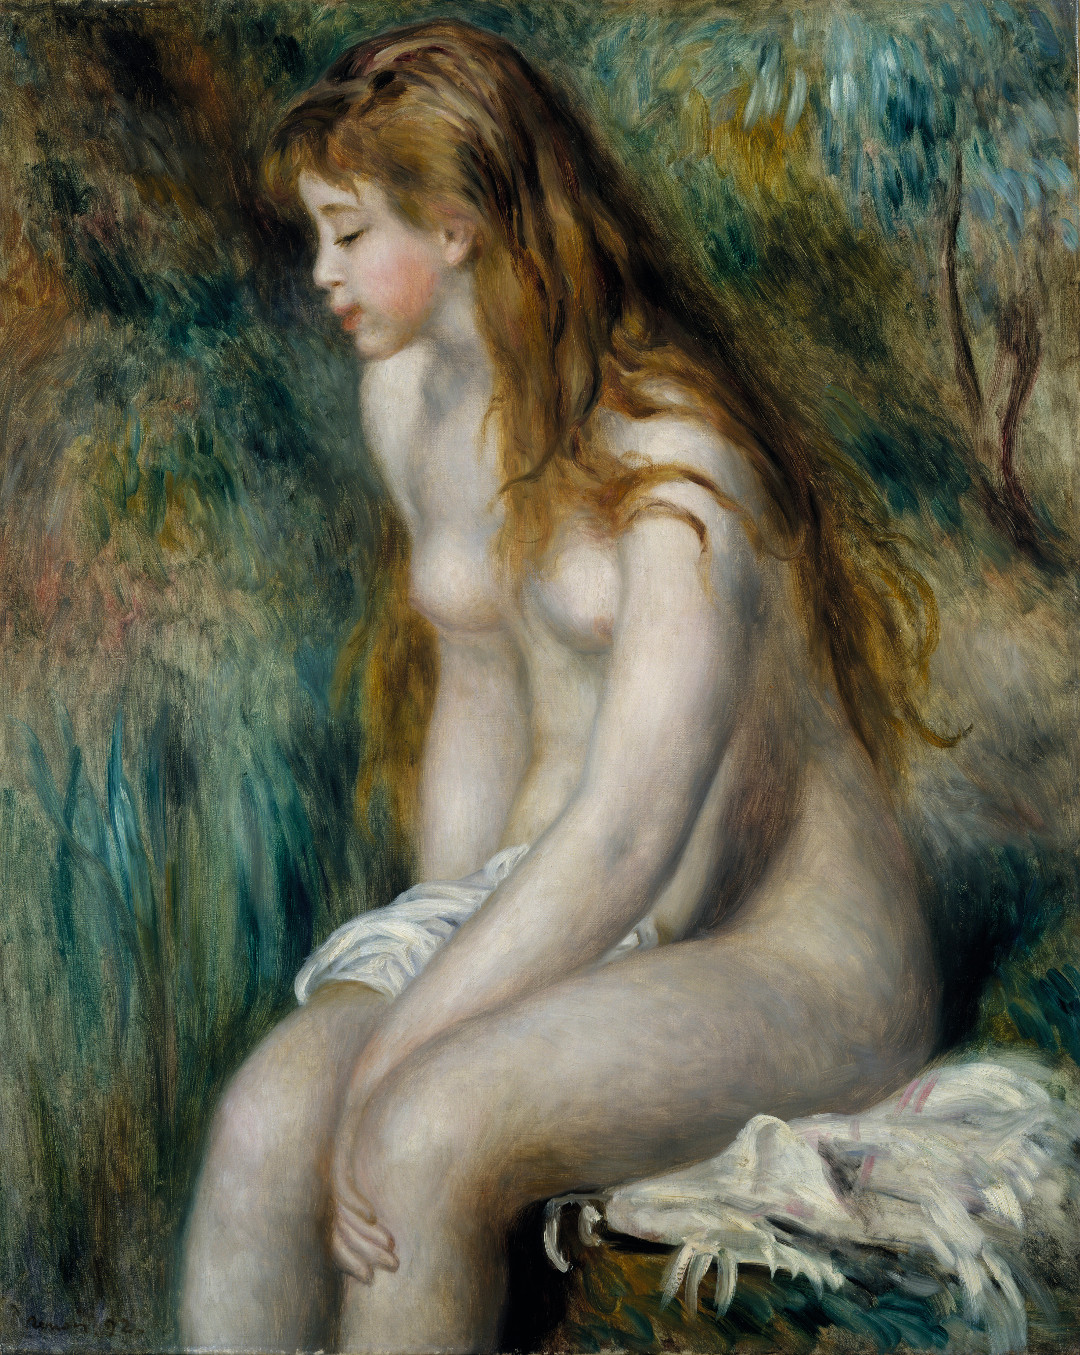 Who knew Renoir did erotica?